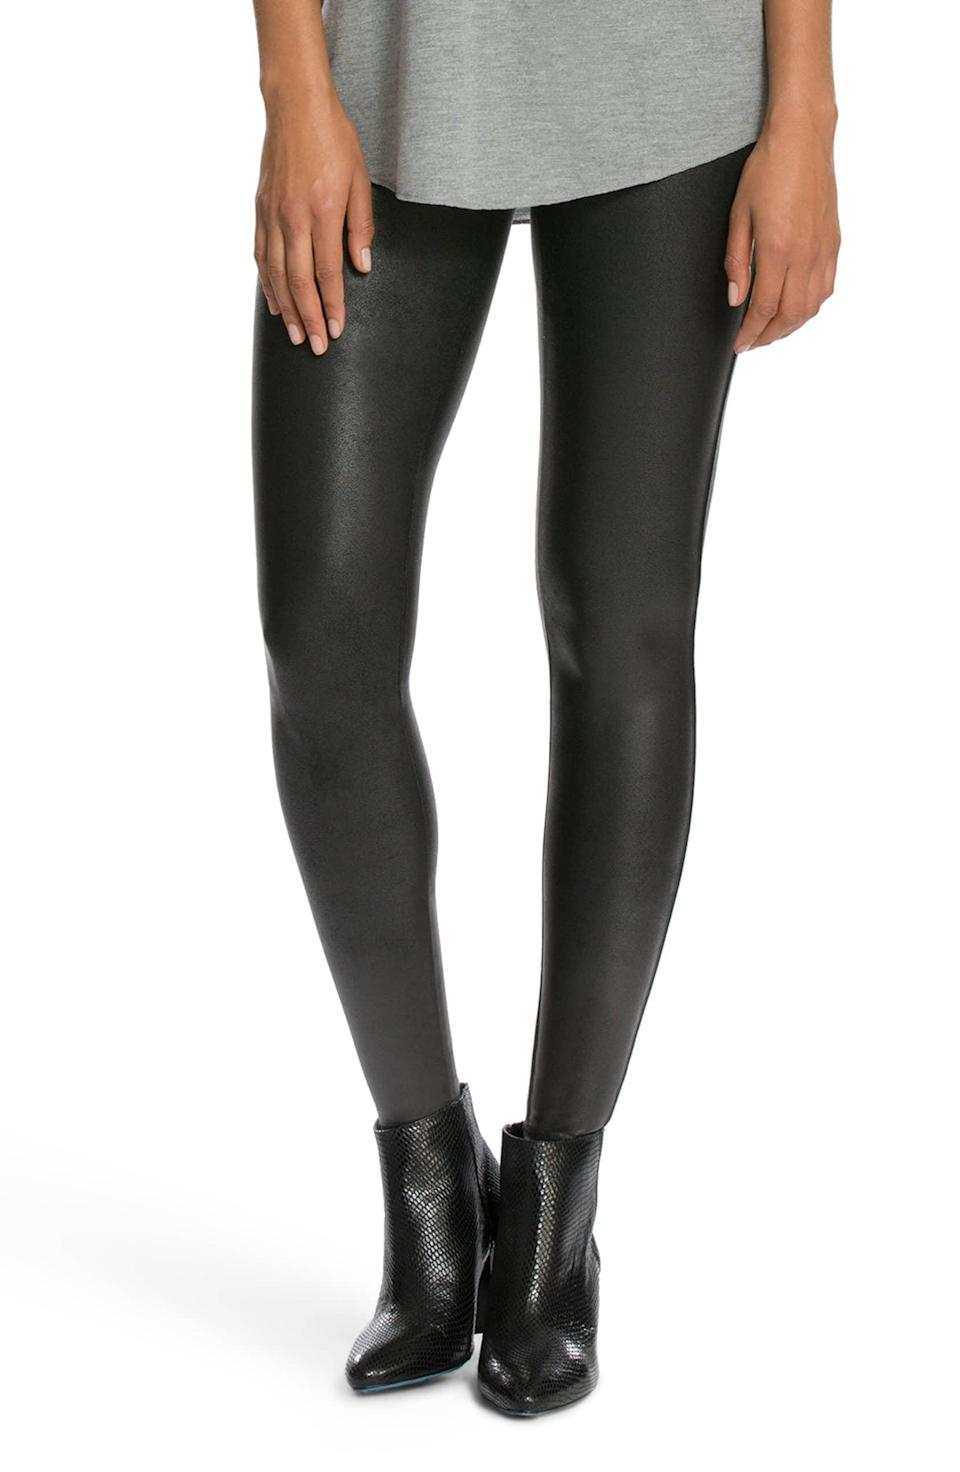 """<strong><h3>Spanx: The Going Out Legging</h3></strong><br>If you're of the """"ride or die"""" variety when it comes to leggings, then you'll know they don't have to be reserved for just the day time. These faux leather leggings are your Friday nights' new best friend.<br><br><strong>The hype:</strong> 4.4 out of 5 stars and 3,300 reviews on Nordstrom<br><br><strong>What they're saying:</strong> """"I've been looking at these leggings for over a year! I wanted them but wasn't sure I could justify the cost for """"leggings""""... seriously, don't even think twice! They are amazing!! The can be dressed up or down so easily! they are so comfortable and really do compress/smooth in the right places!!! I immediately ordered the motto [sic] style the day these came because I love them so much! I am 5'5"""" 140lbs and ordered a medium! They fit great!"""" - Harlihol, Nordstrom Review<br><br><strong>SPANX</strong> Faux Leather Leggings, $, available at <a href=""""https://go.skimresources.com/?id=30283X879131&url=https%3A%2F%2Fwww.nordstrom.com%2Fs%2Fspanx-faux-leather-leggings%2F3828364"""" rel=""""nofollow noopener"""" target=""""_blank"""" data-ylk=""""slk:Nordstrom"""" class=""""link rapid-noclick-resp"""">Nordstrom</a>"""